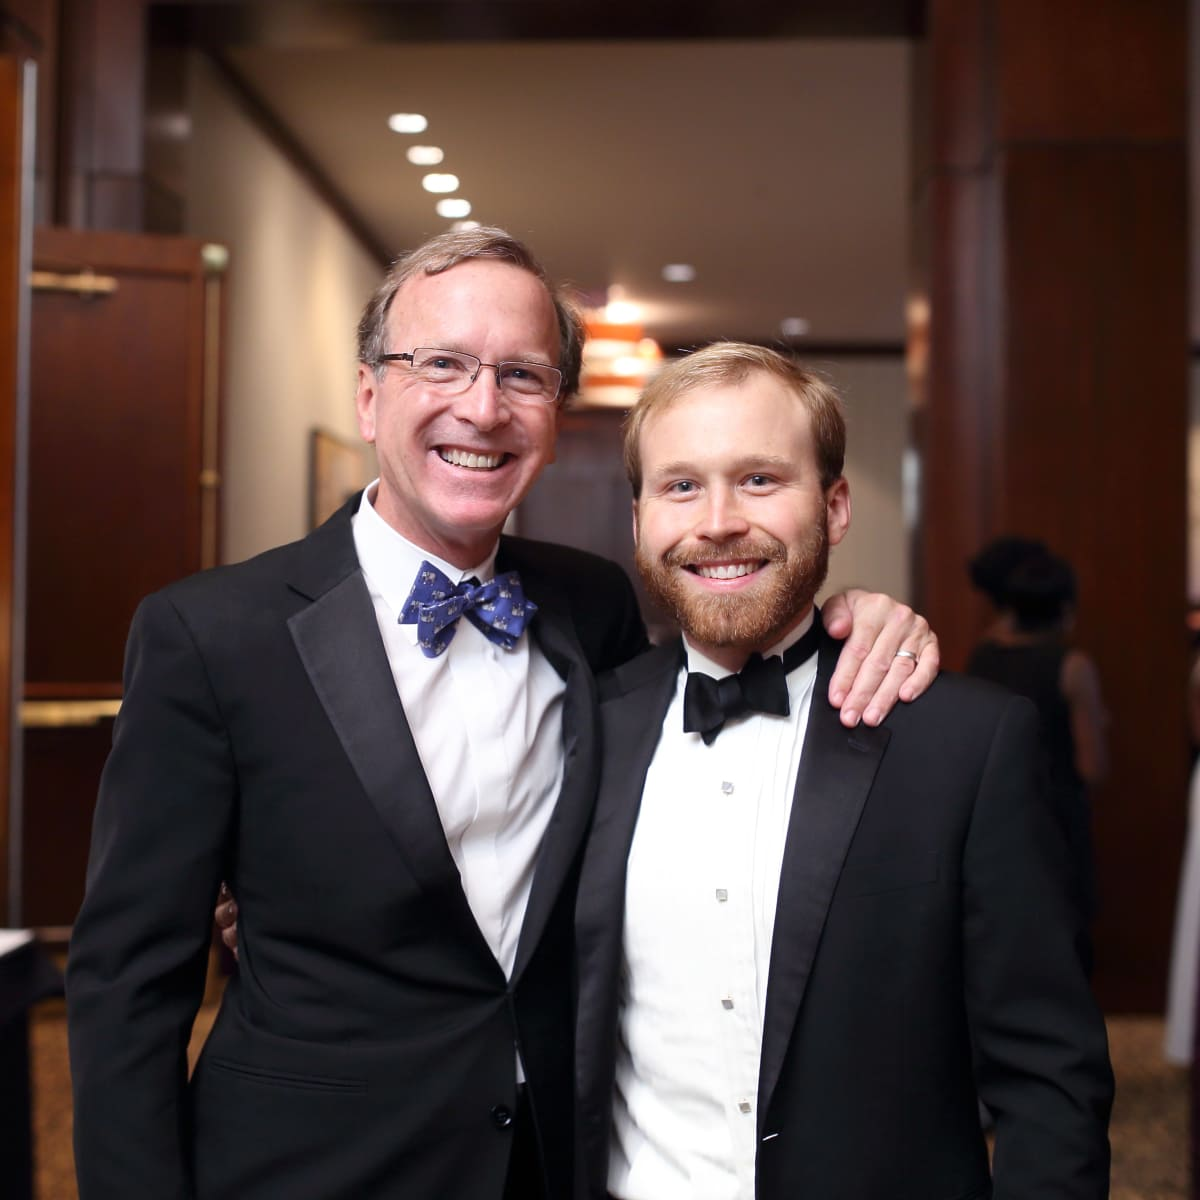 Big Brothers Big Sisters gala 2015 Neil Bush and Pierce Bush